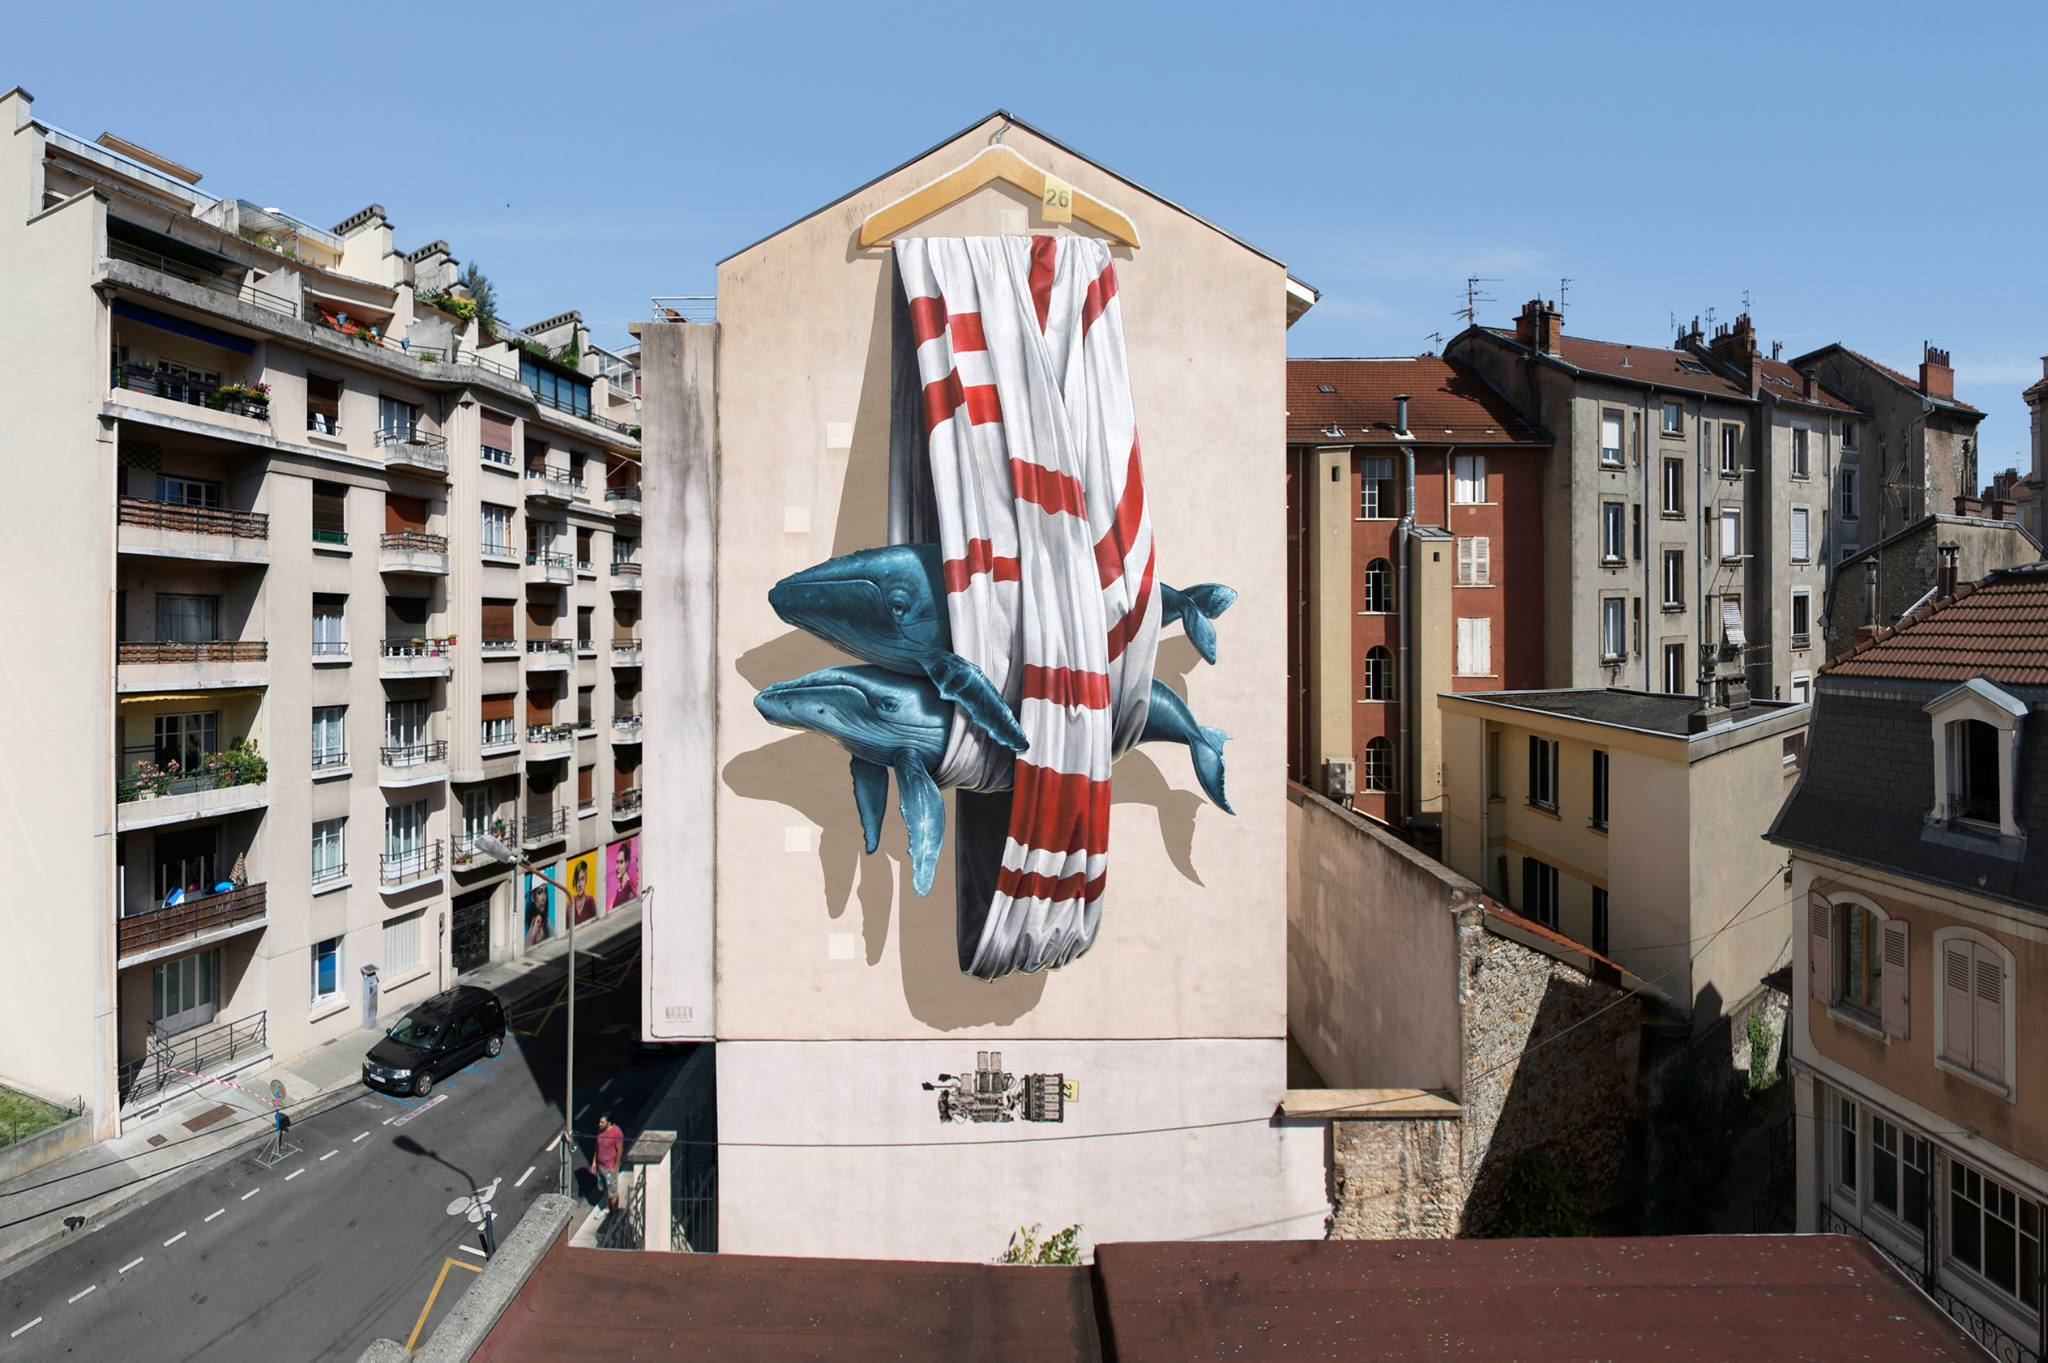 Nevercrew in Grenoble, France for the Grenoble Street Art Fest.